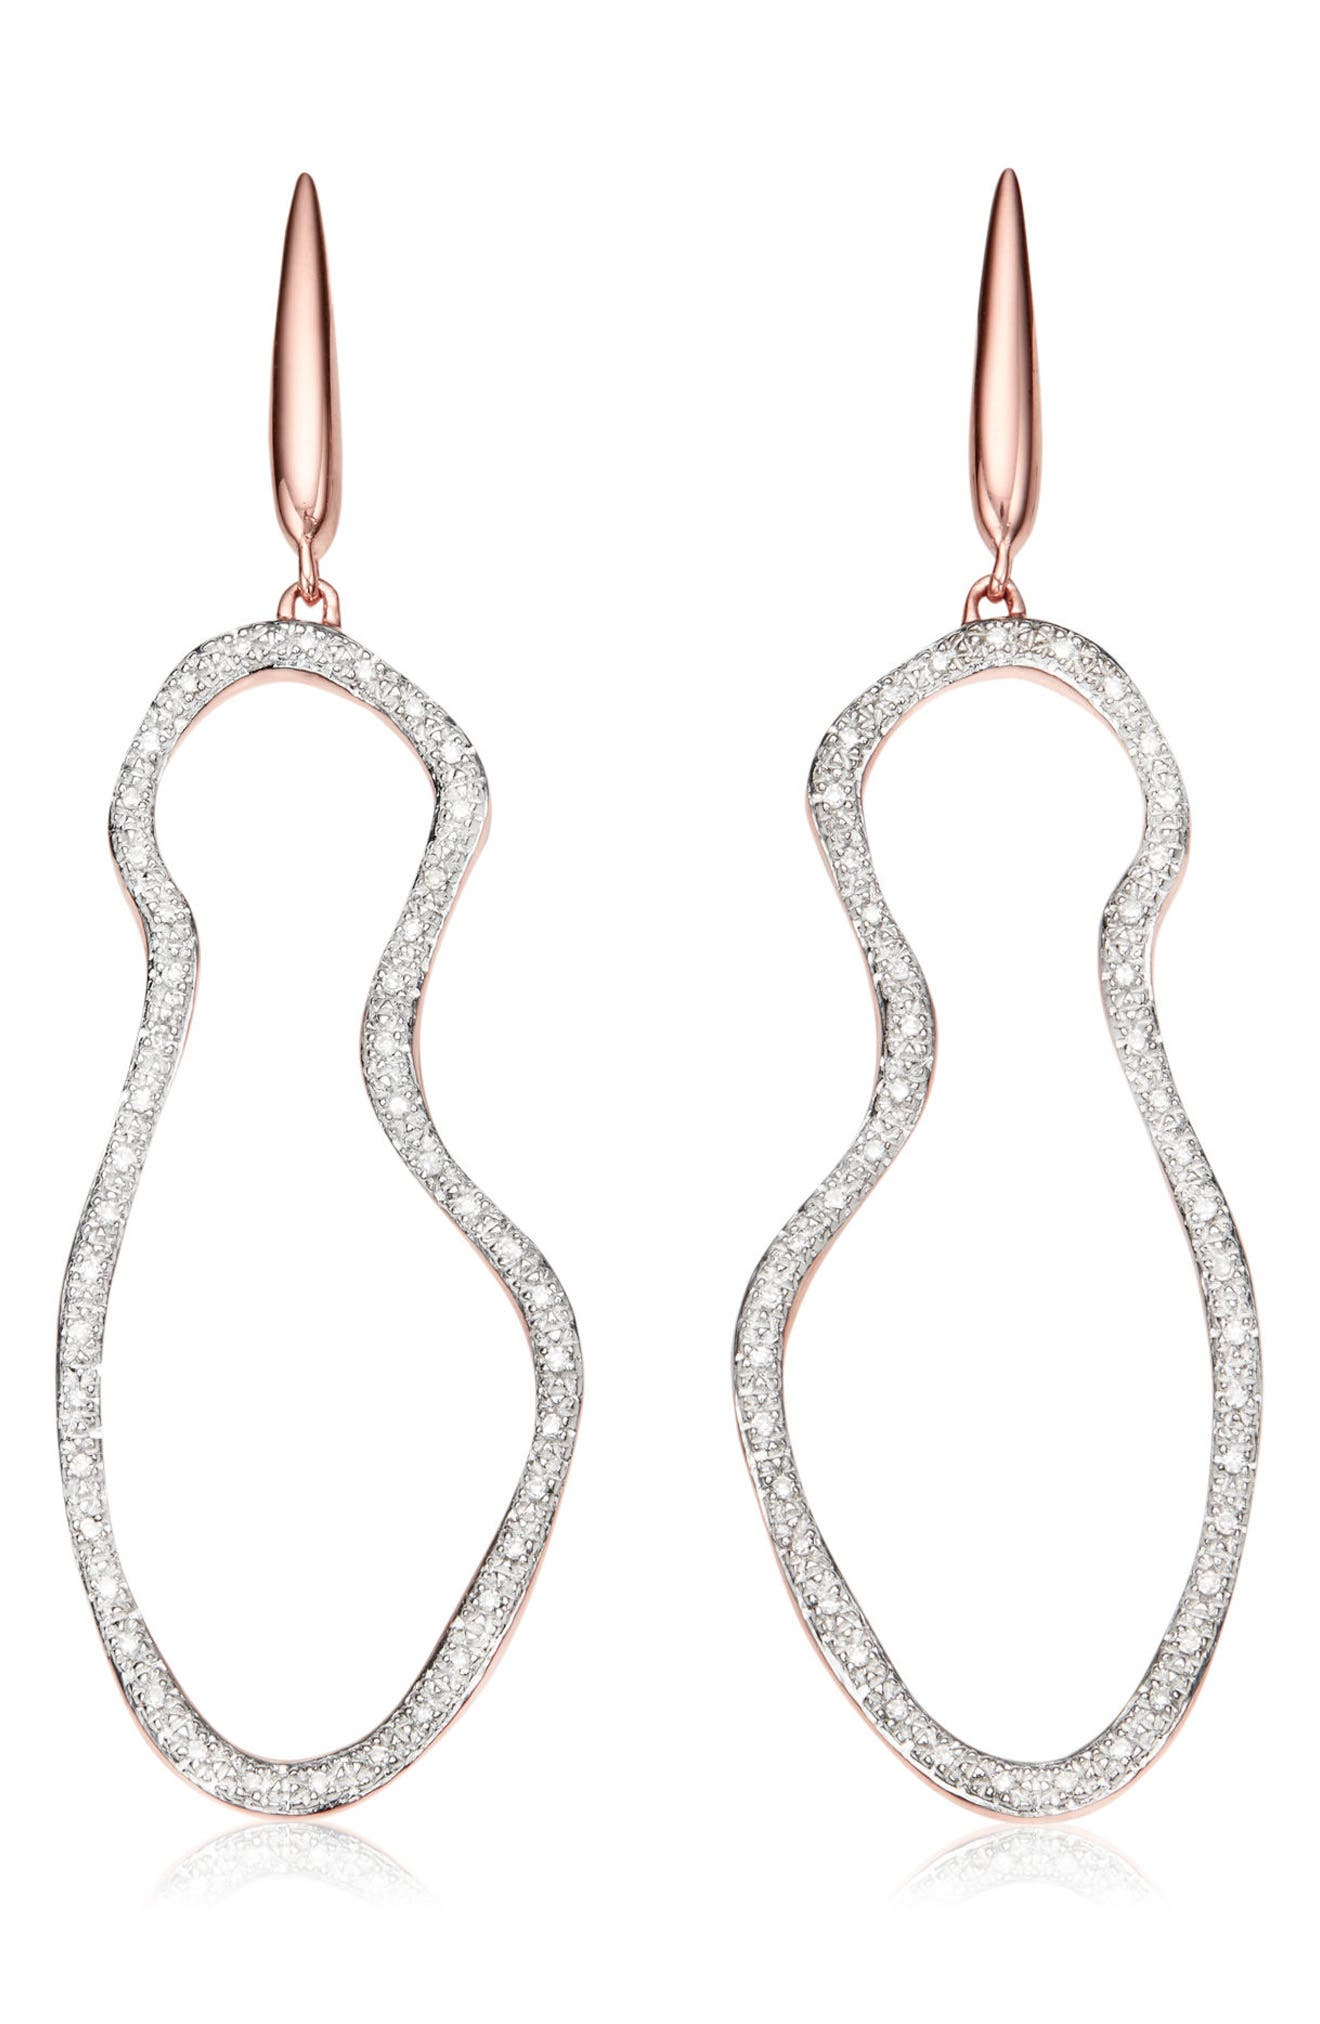 MONICA VINADER Riva Diamond Drop Earrings